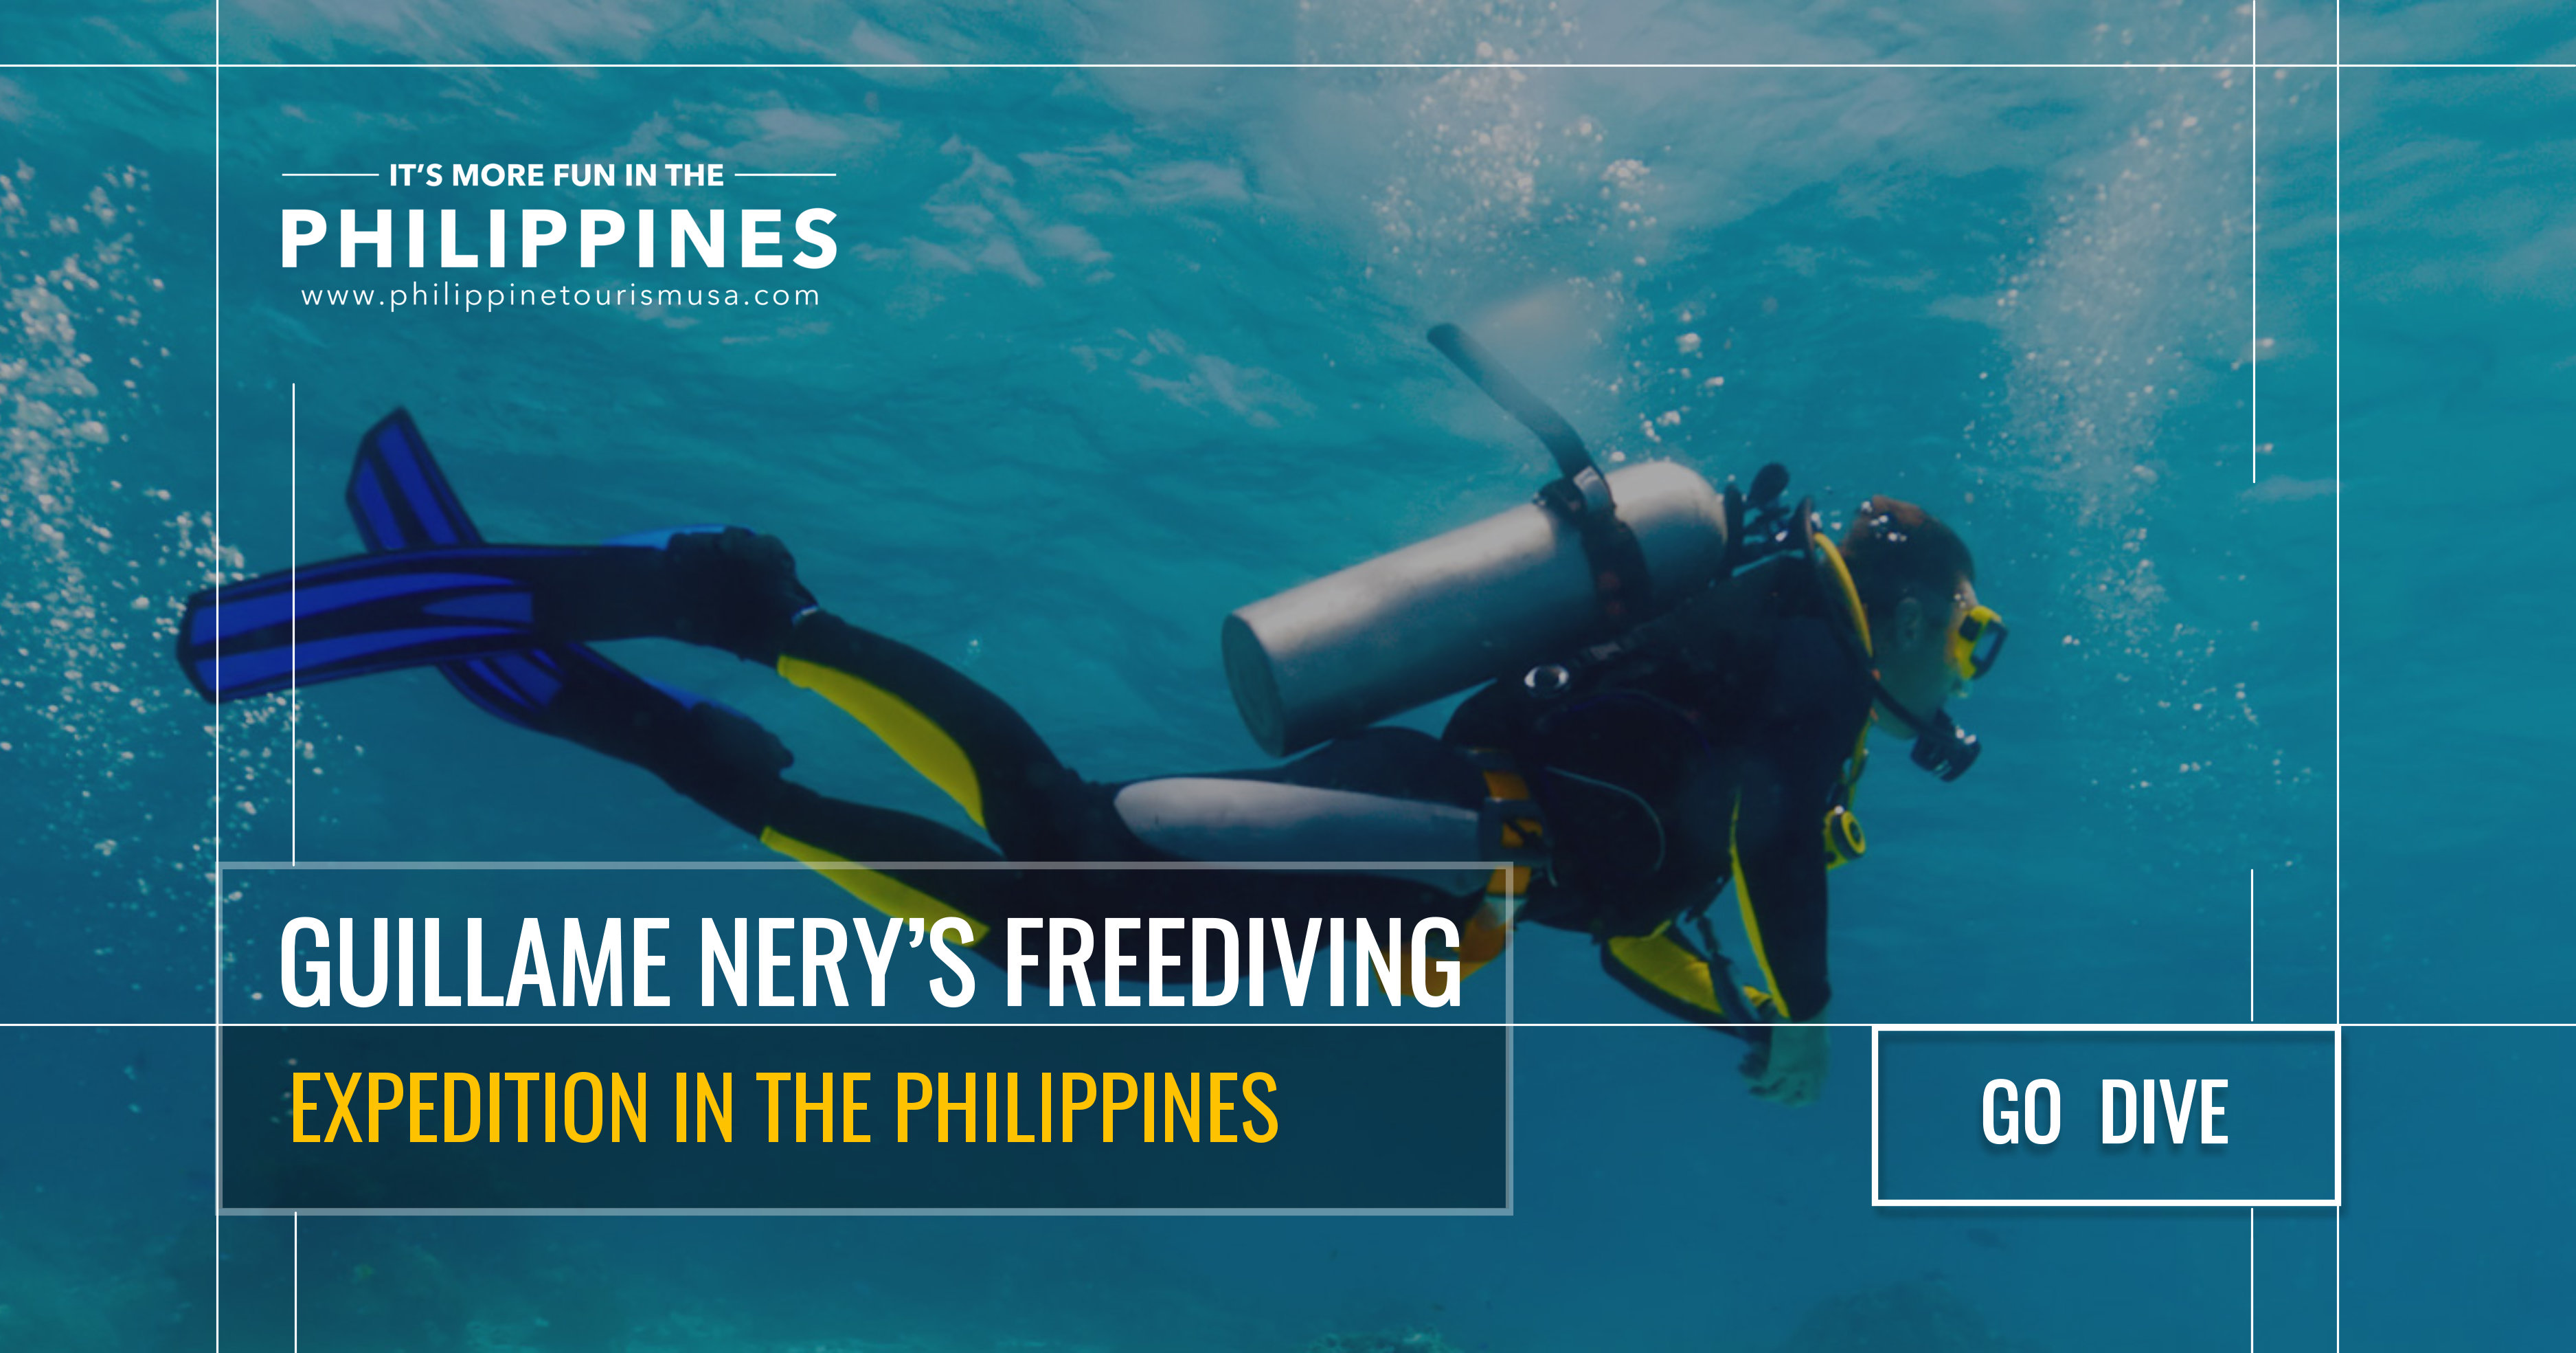 nery freediving